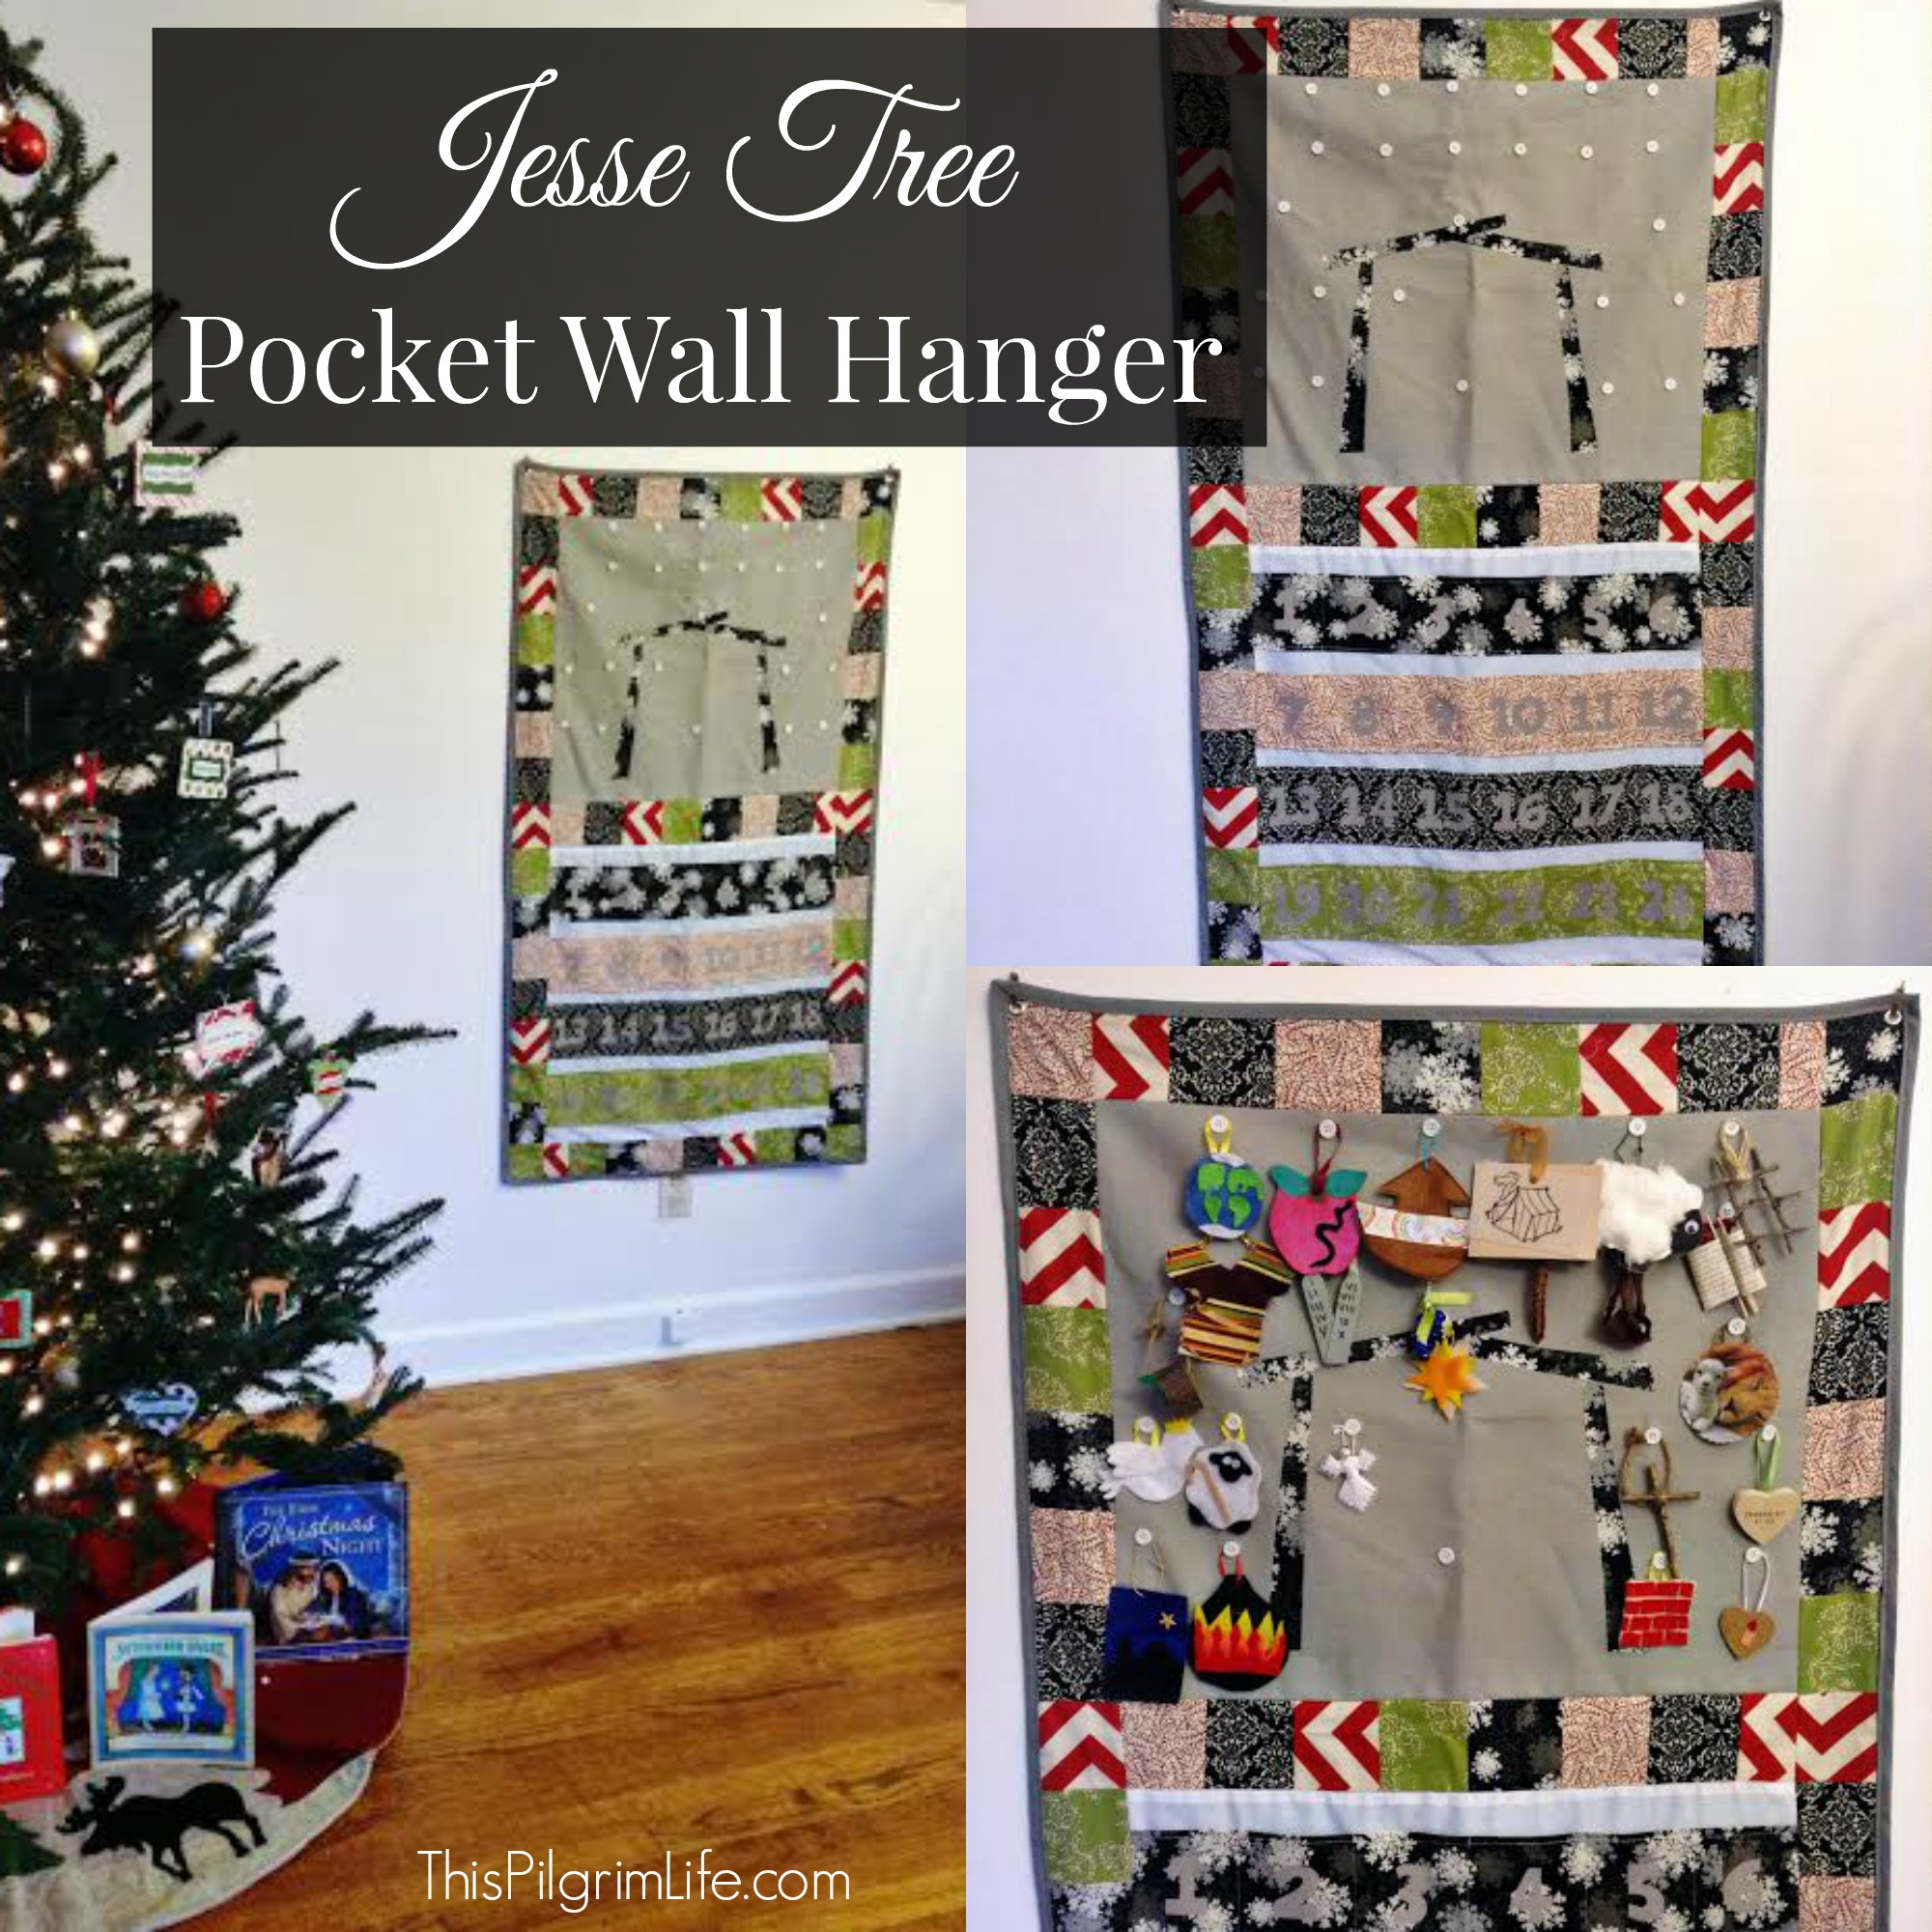 Jesse Tree Pocket Wall Hanger